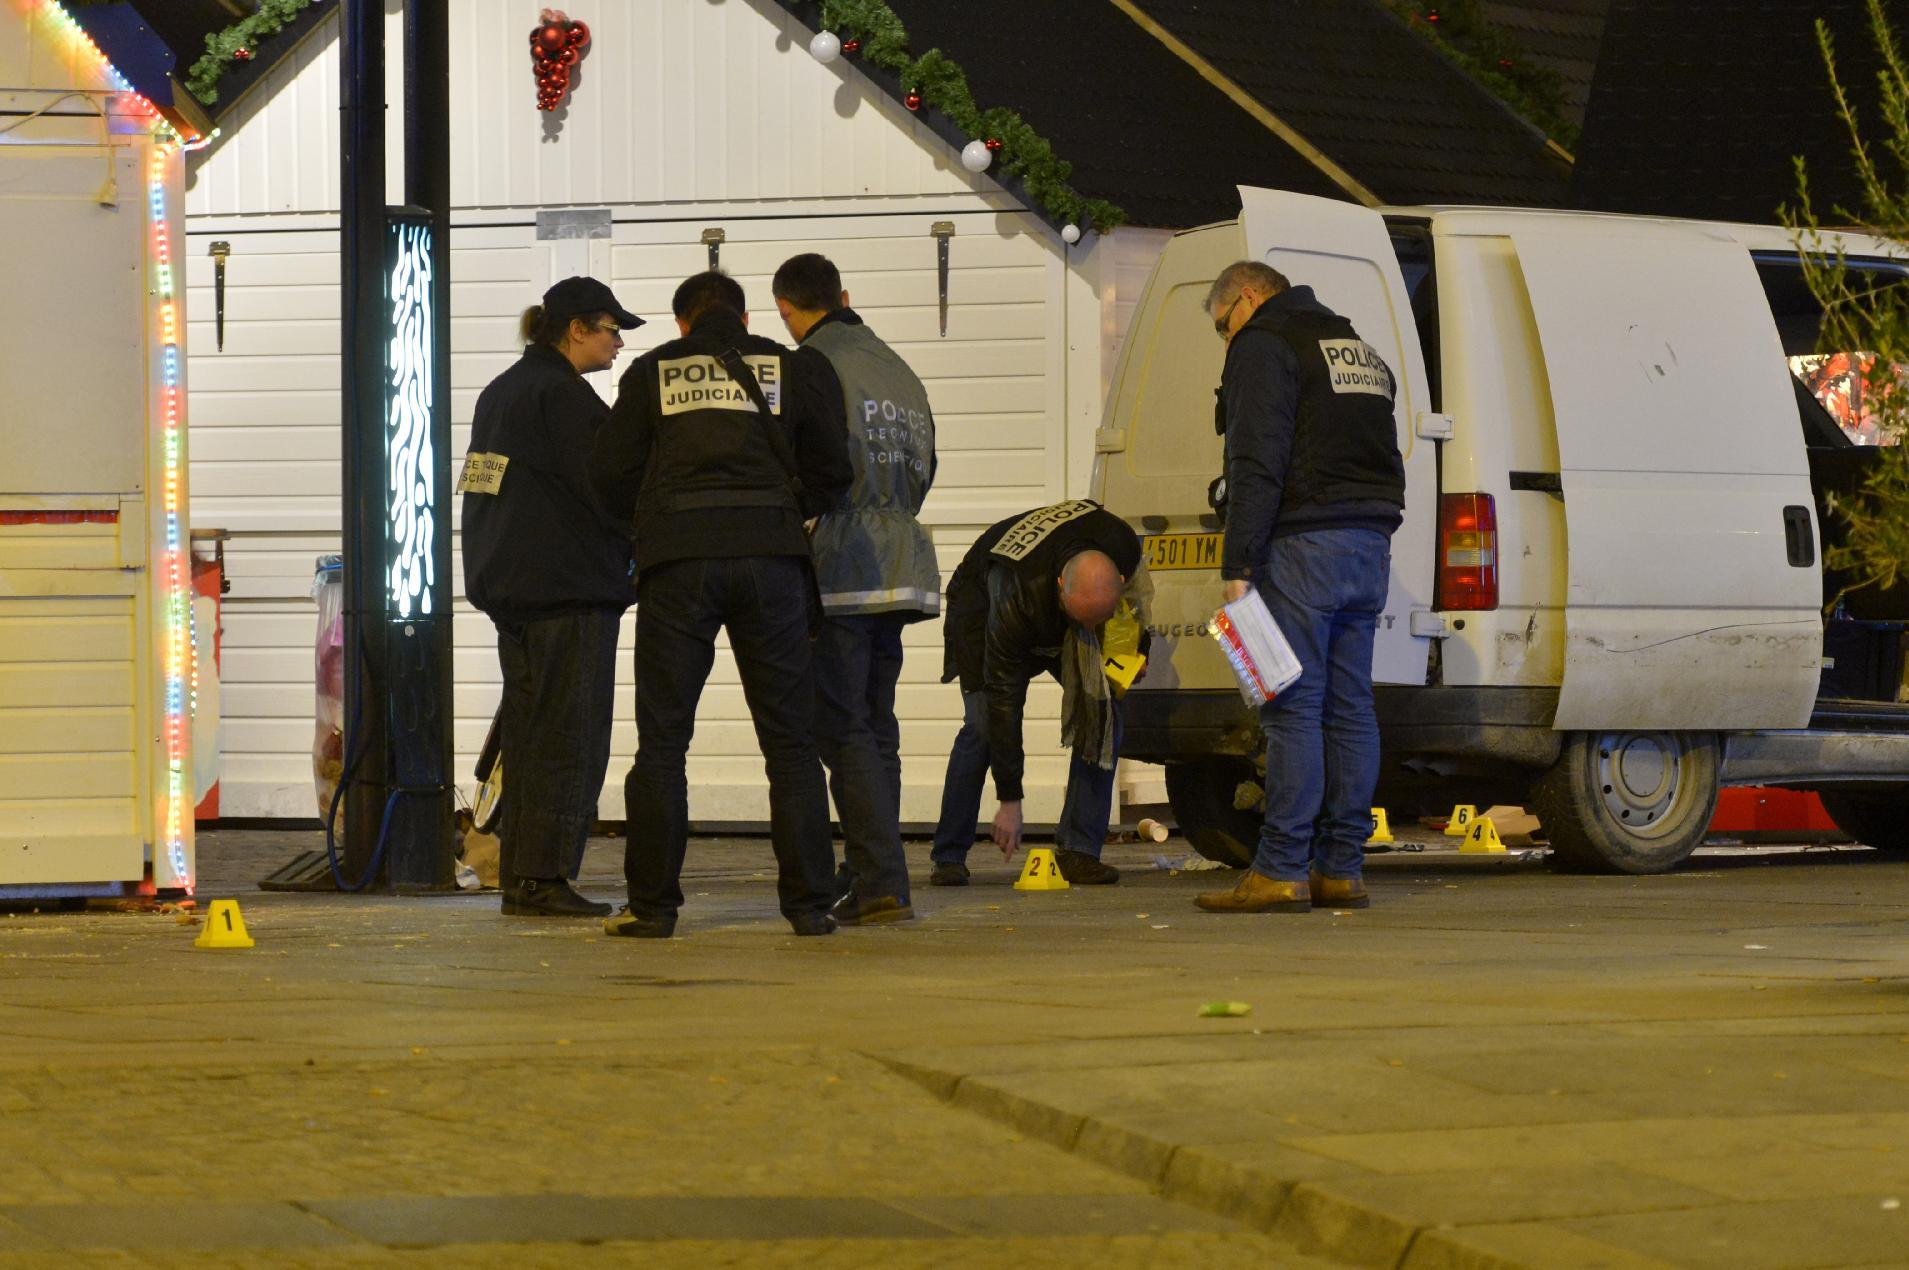 Police inspect the van a driver used to plough into a Christmas market, injuring at least 10 people before stabbing himself in the western French city of Nantes on December 22, 2014 (AFP Photo/Georges Gobet)